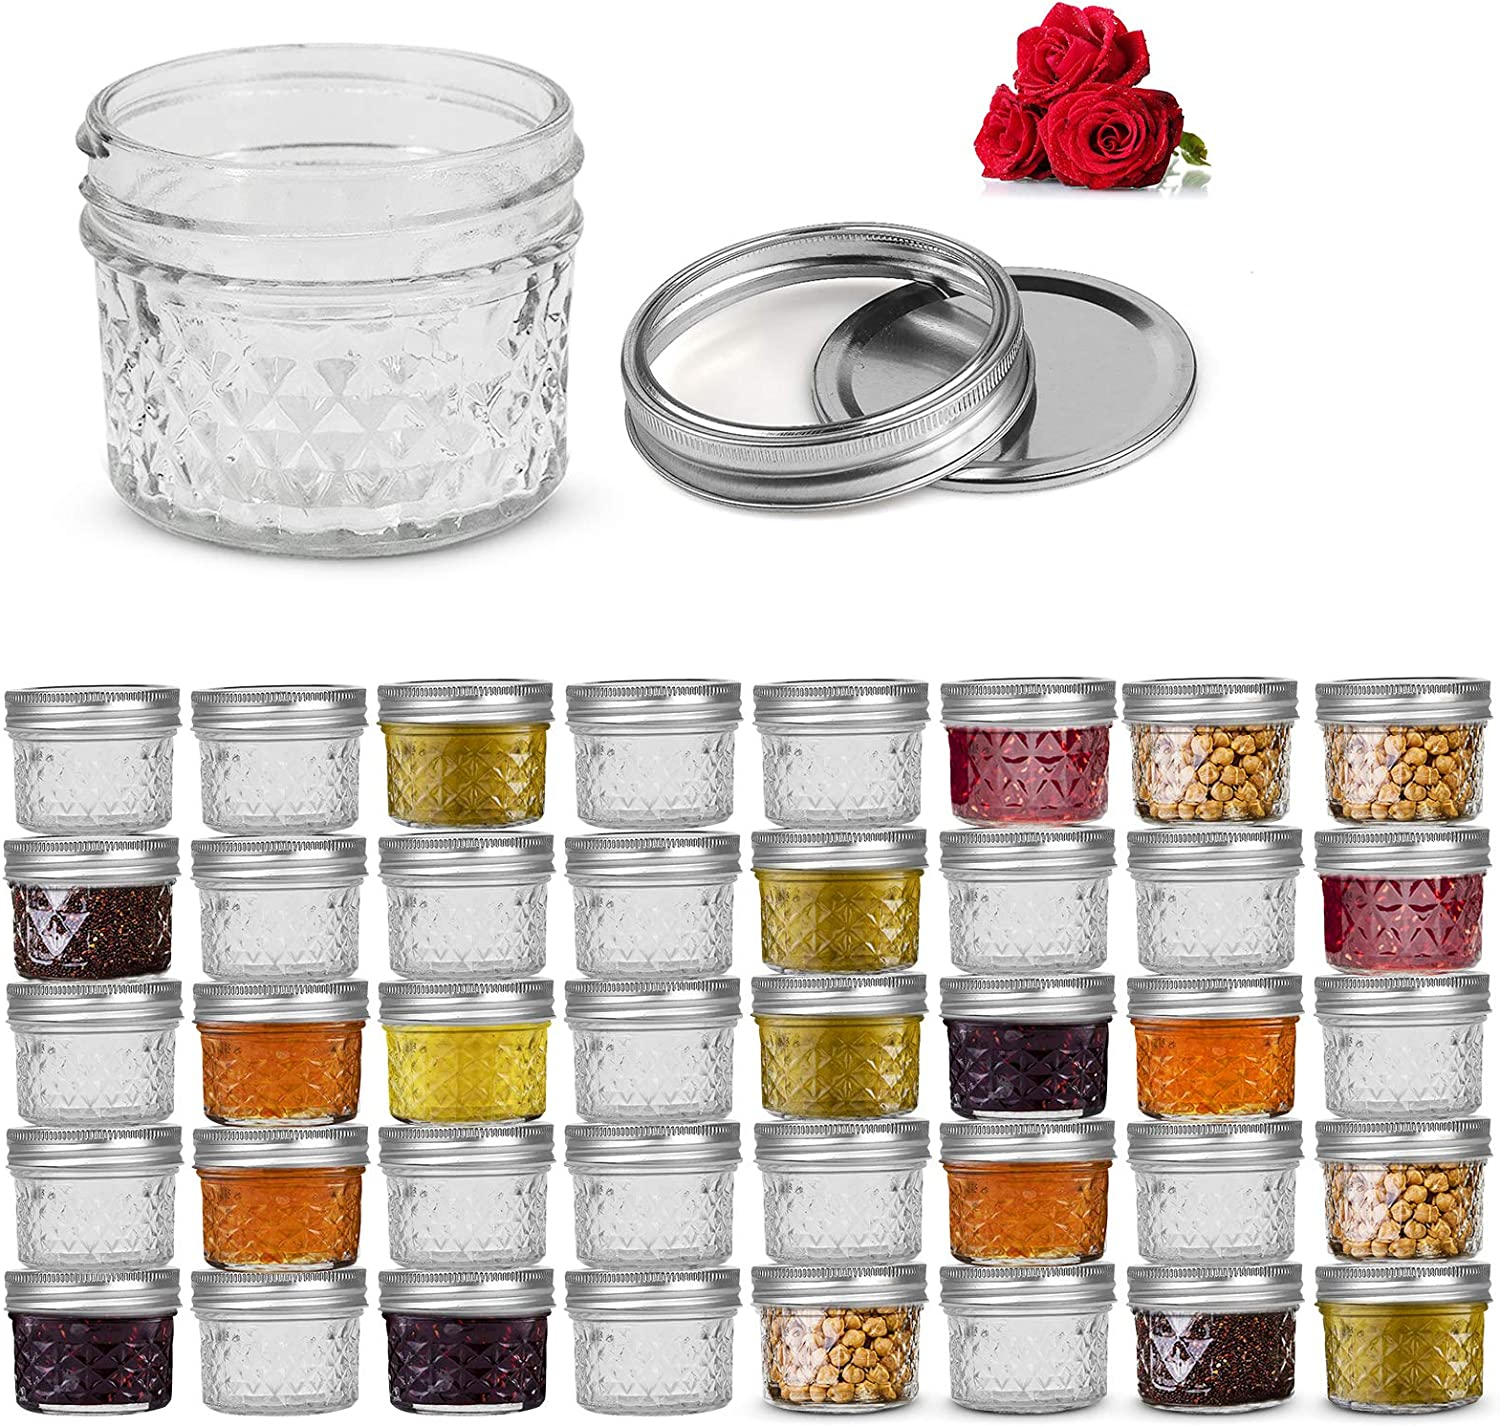 LovoIn 4oz 40 PACK Regular Mouth Mini Mason Jars with Lids and Bands, Quilted Crystal Jars Ideal for Food Storage, Jam, Body Butters, Jelly, Wedding Favors, Baby Foods